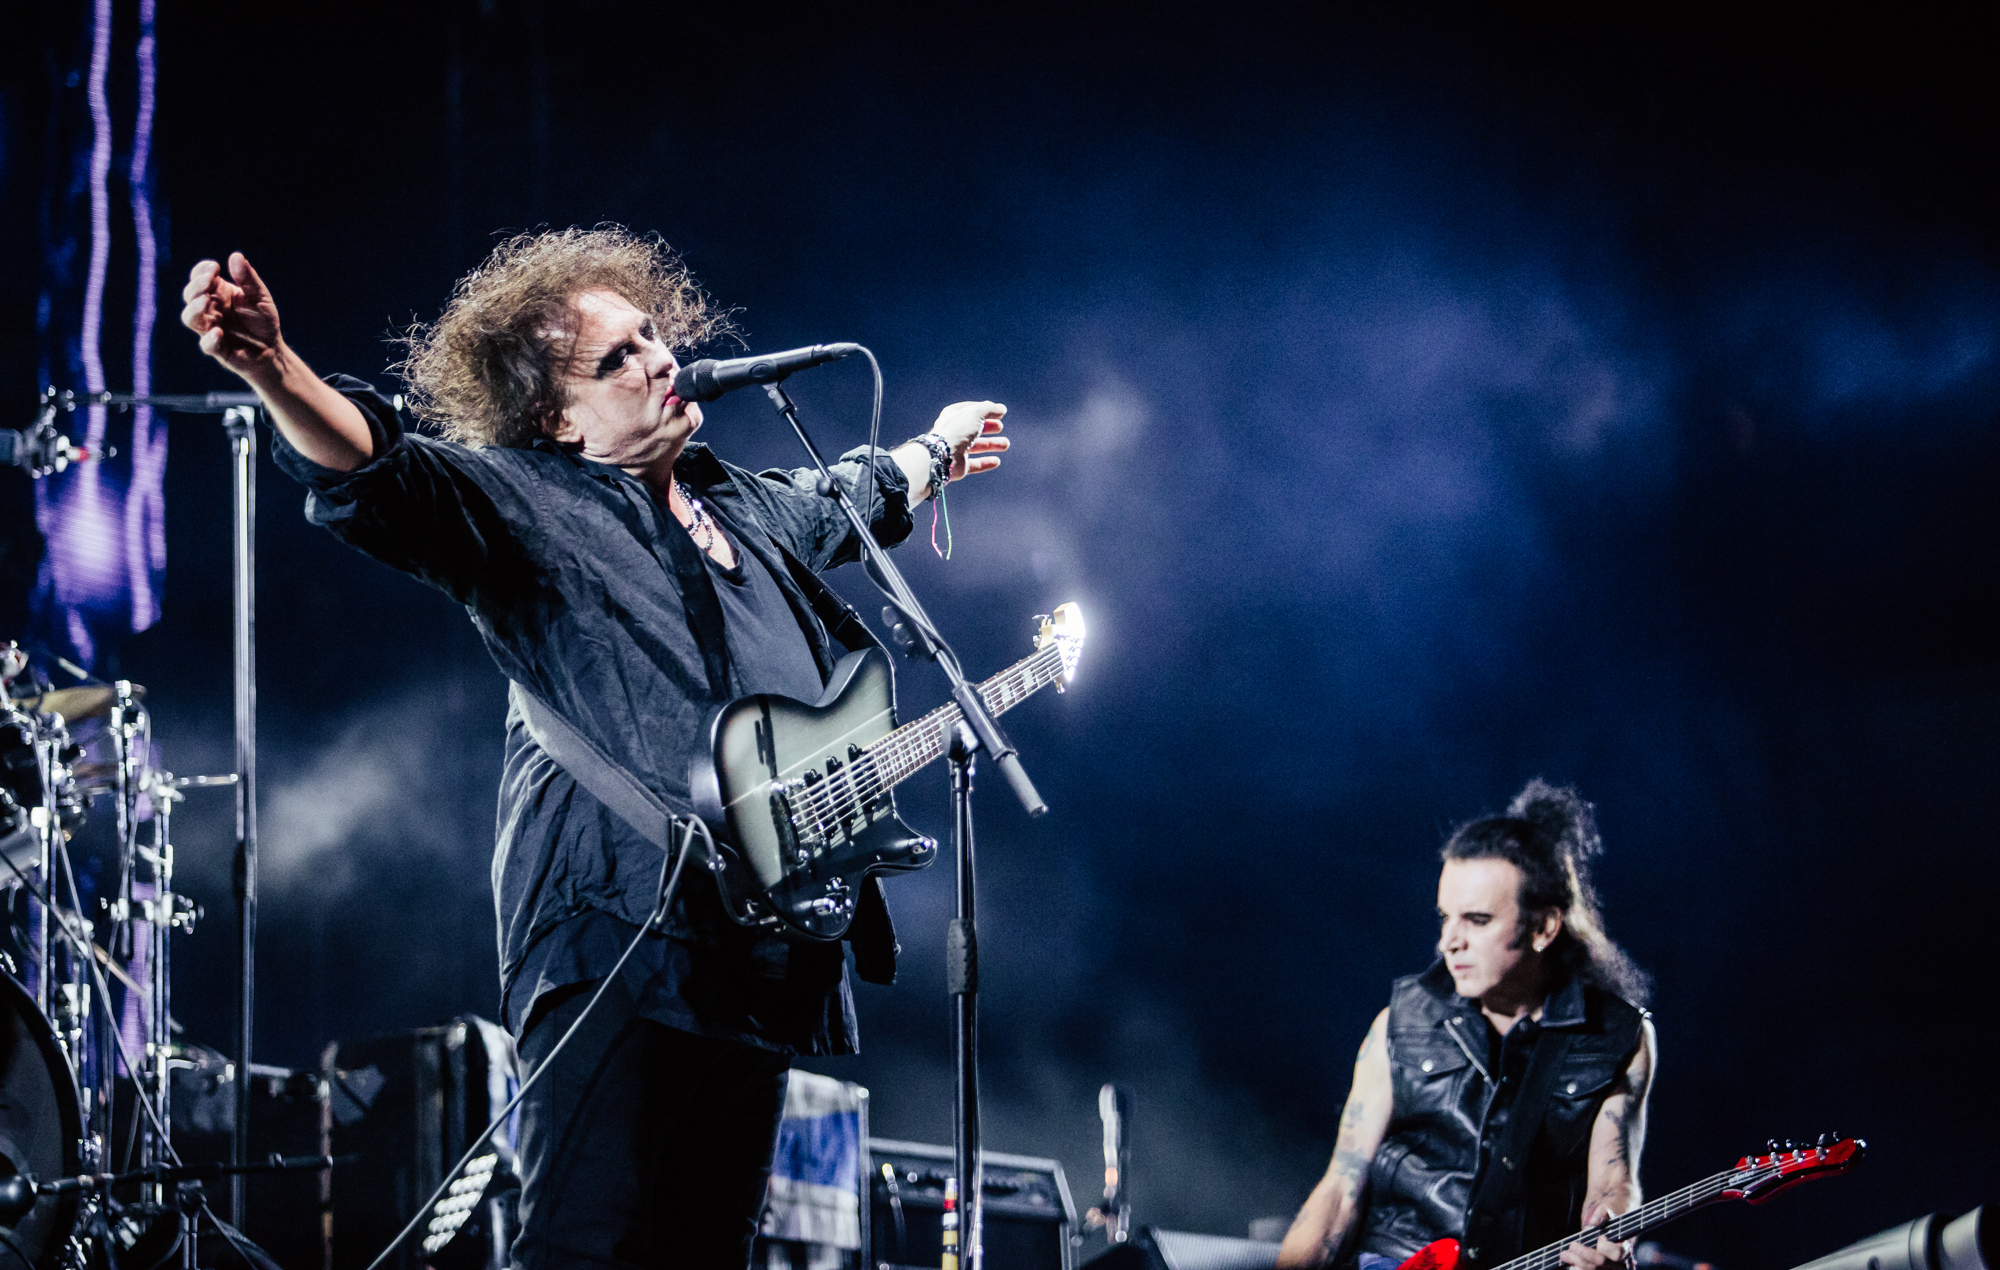 The Cure Carry On Their Glastonbury High With Giddily